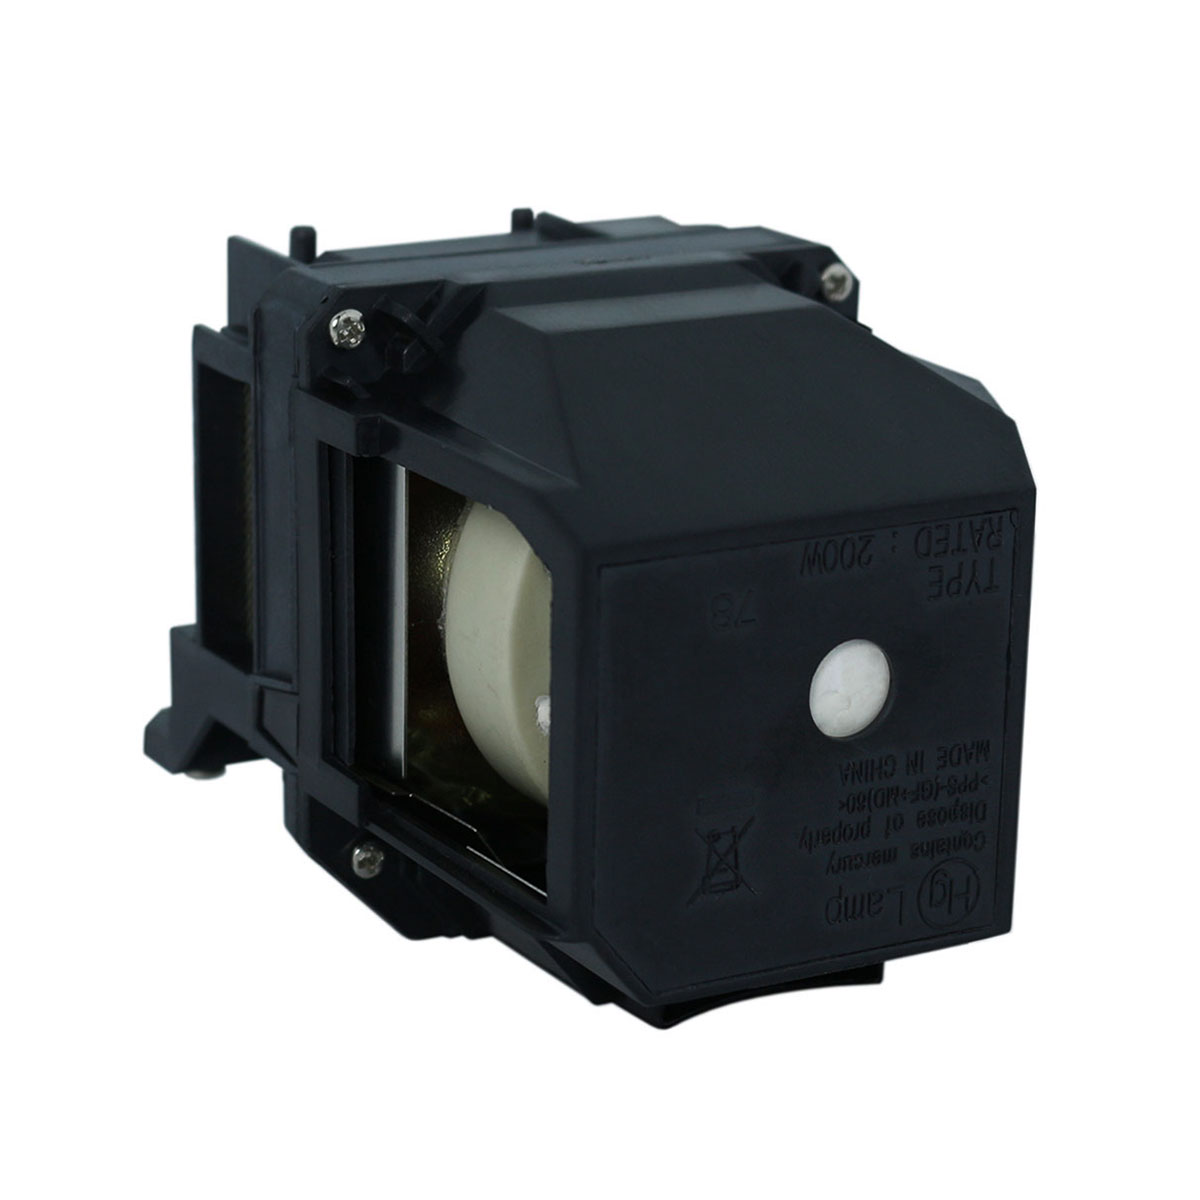 Original Philips Projector Lamp Replacement for Epson PowerLite 99W (Bulb Only) - image 2 of 5